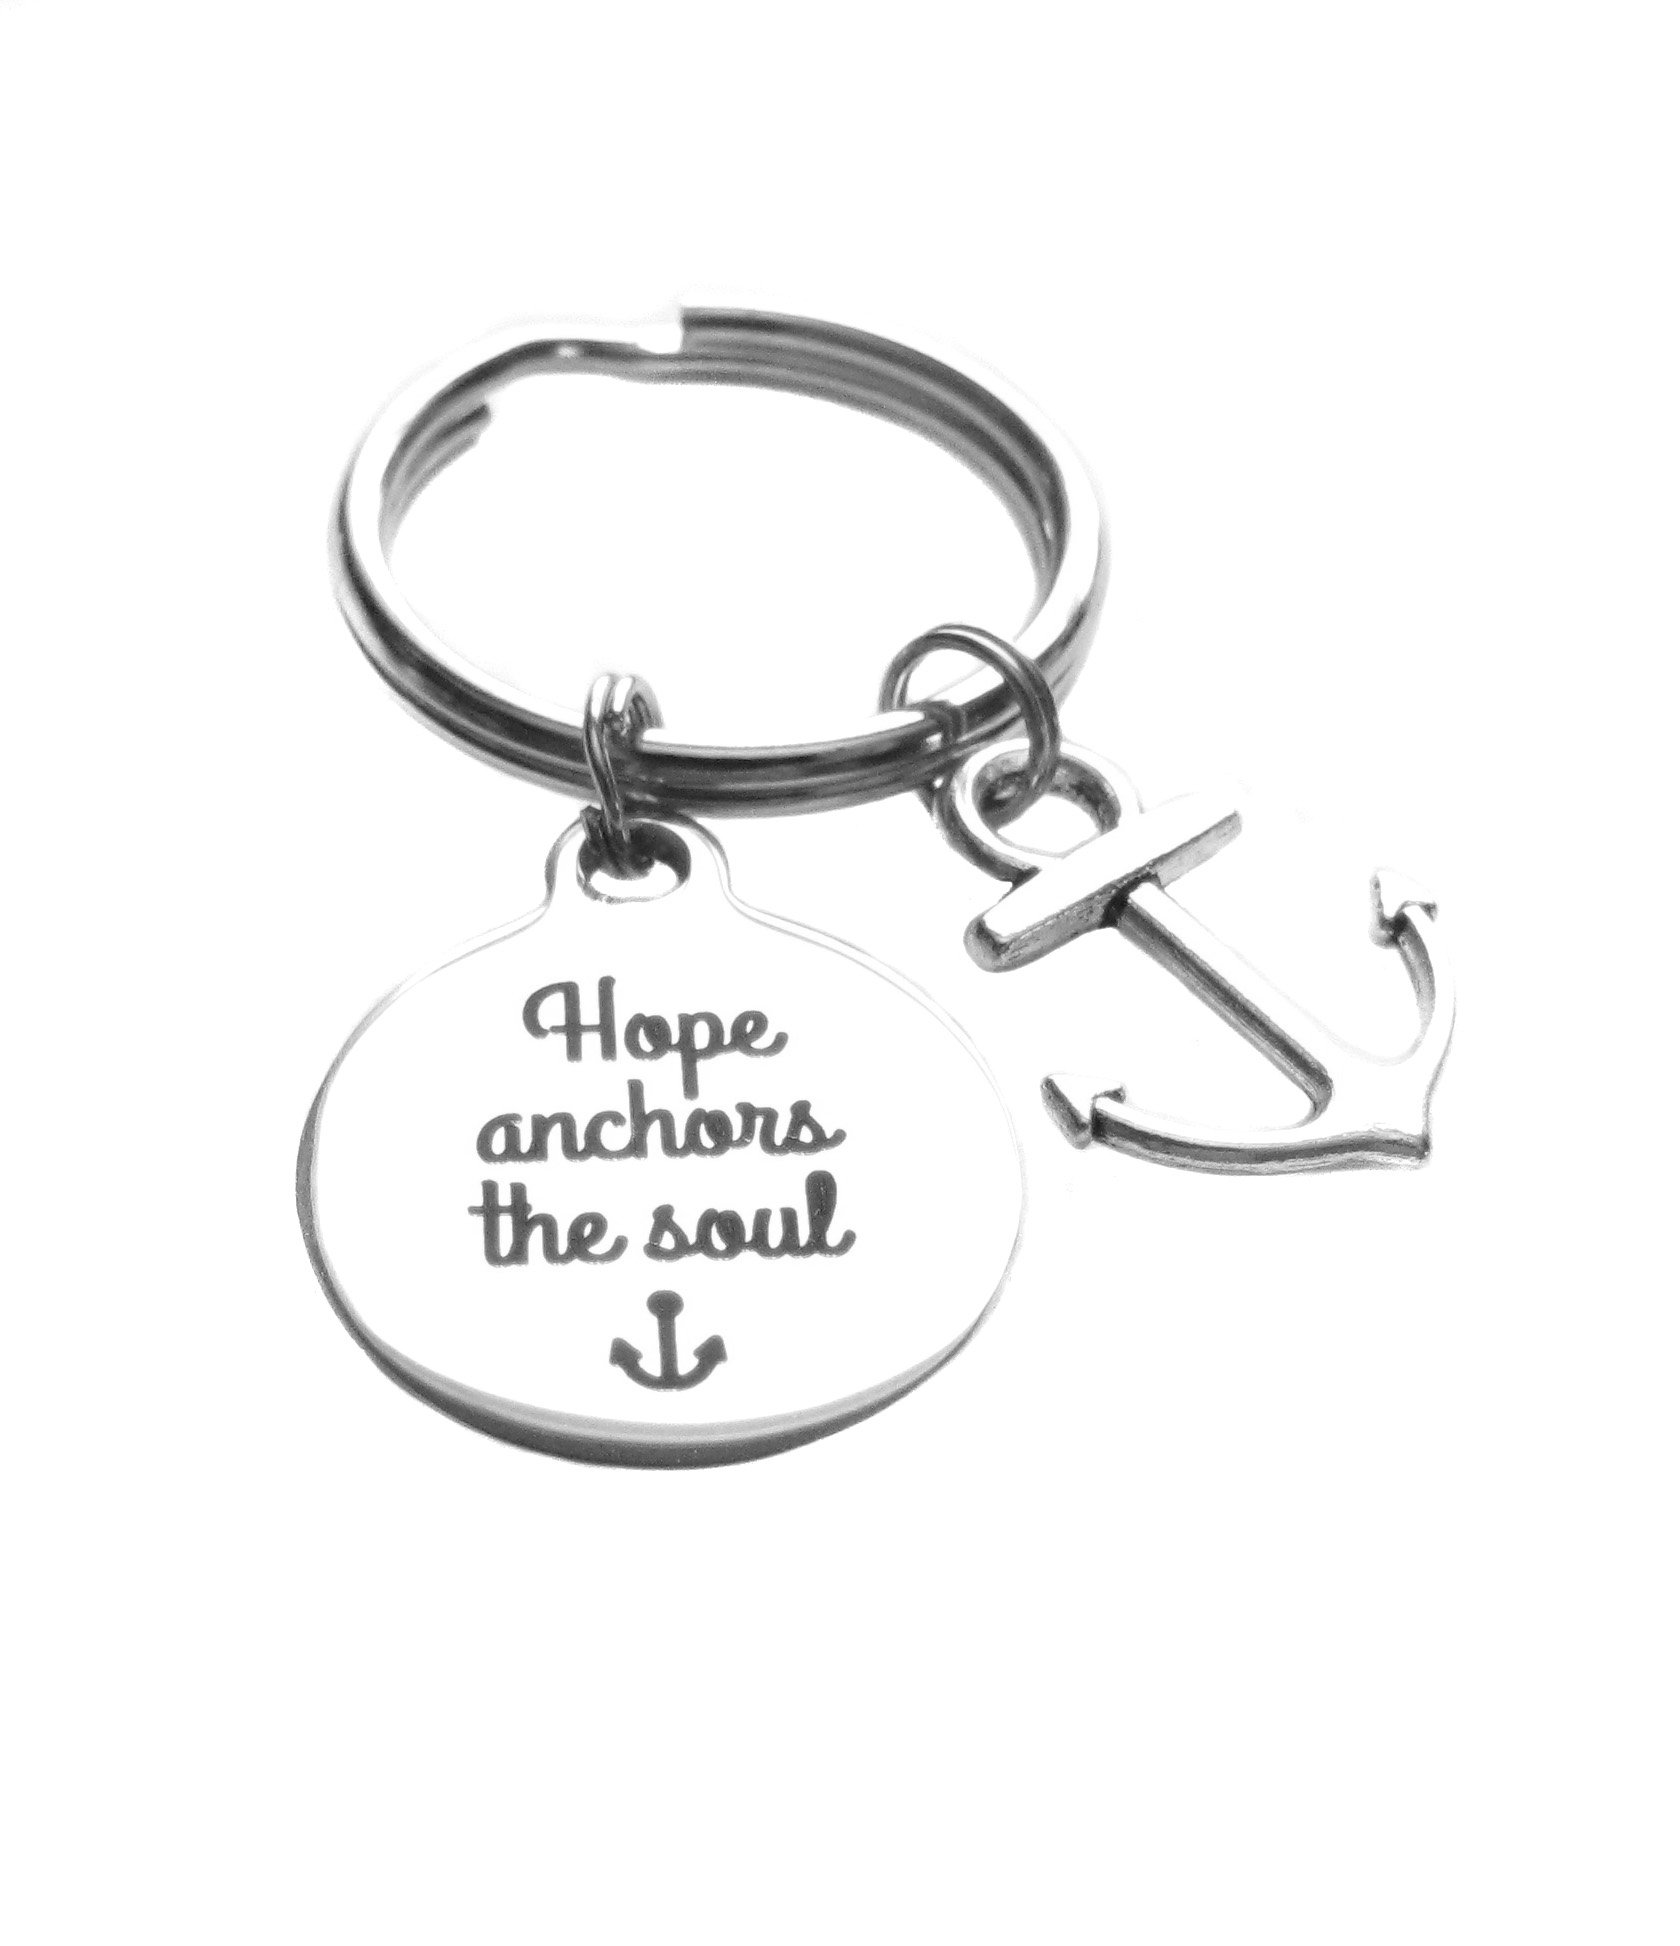 Stainless Steel ''Hope Anchors the Soul'' and Anchor Charms Keychain, Inspirational Gift